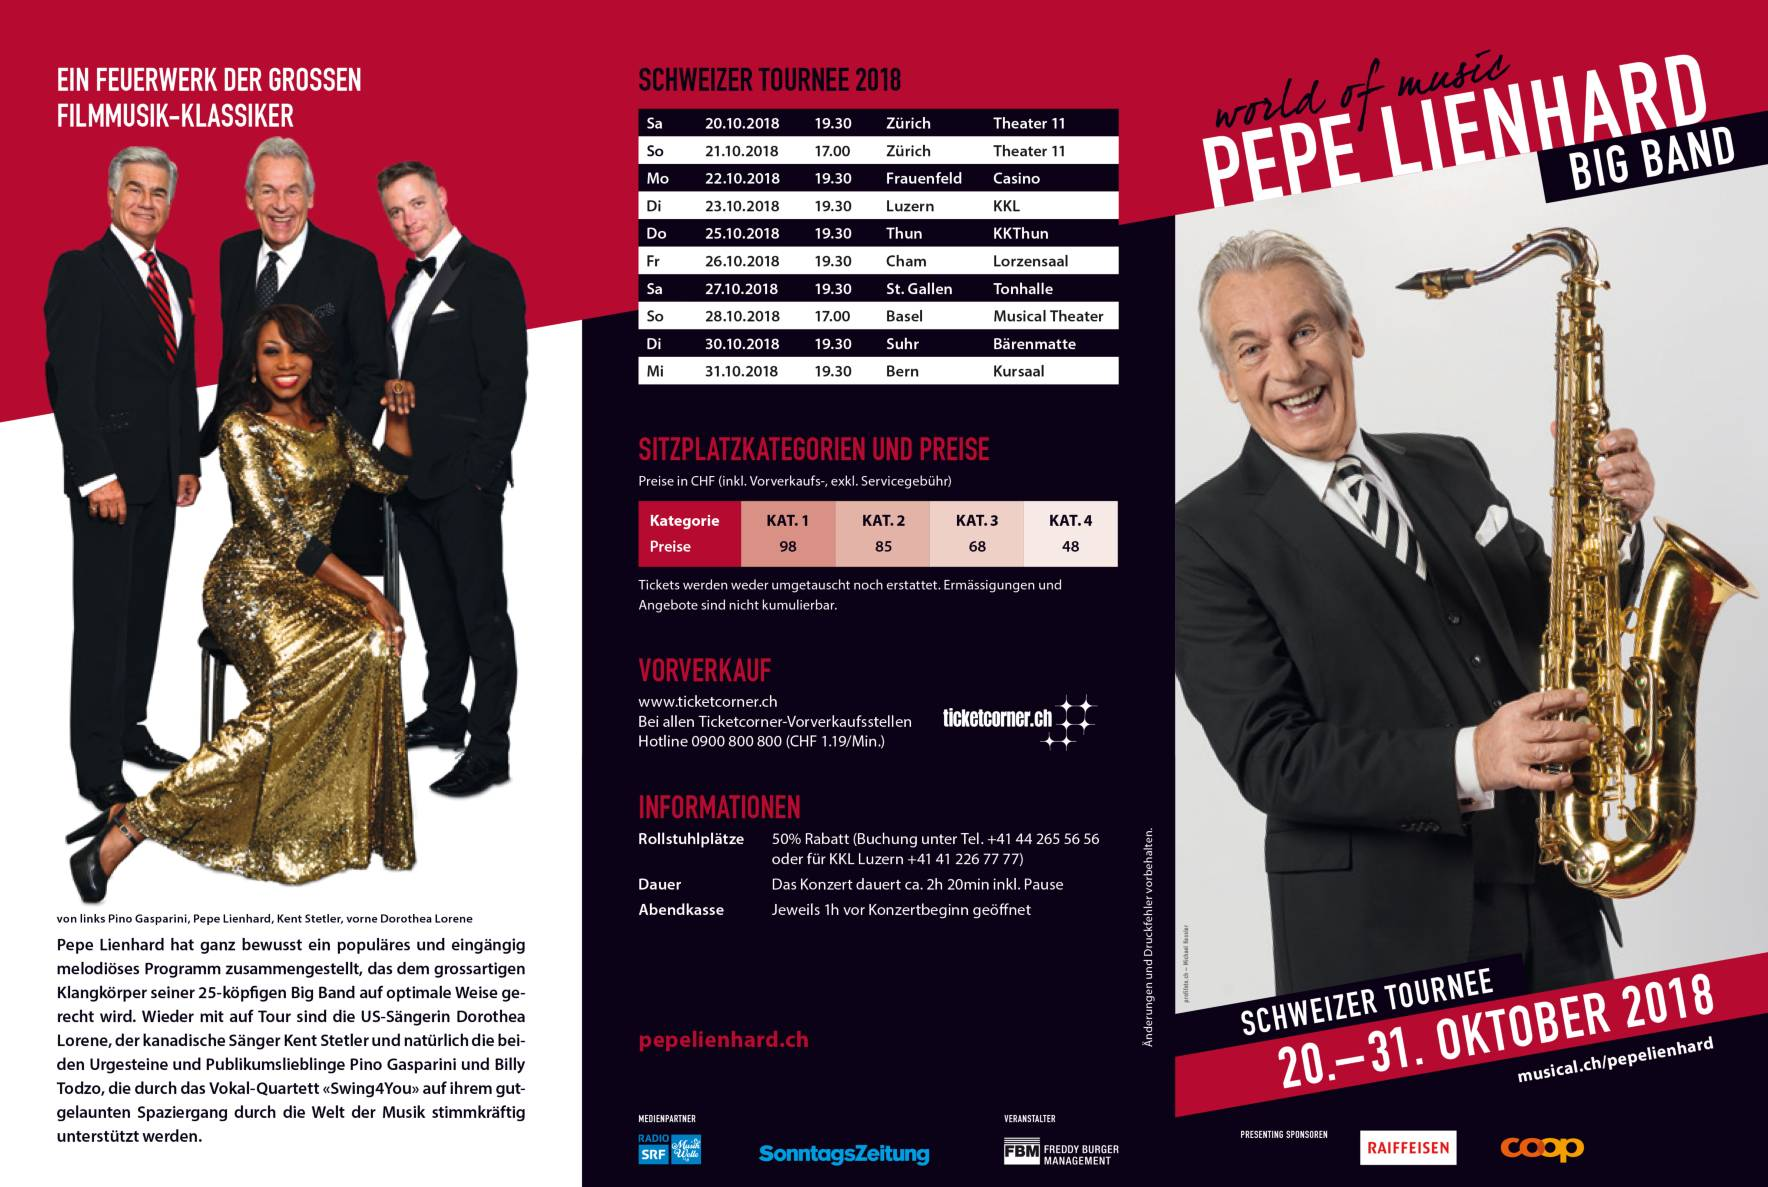 Pepe Lienhard Big Band Tournee